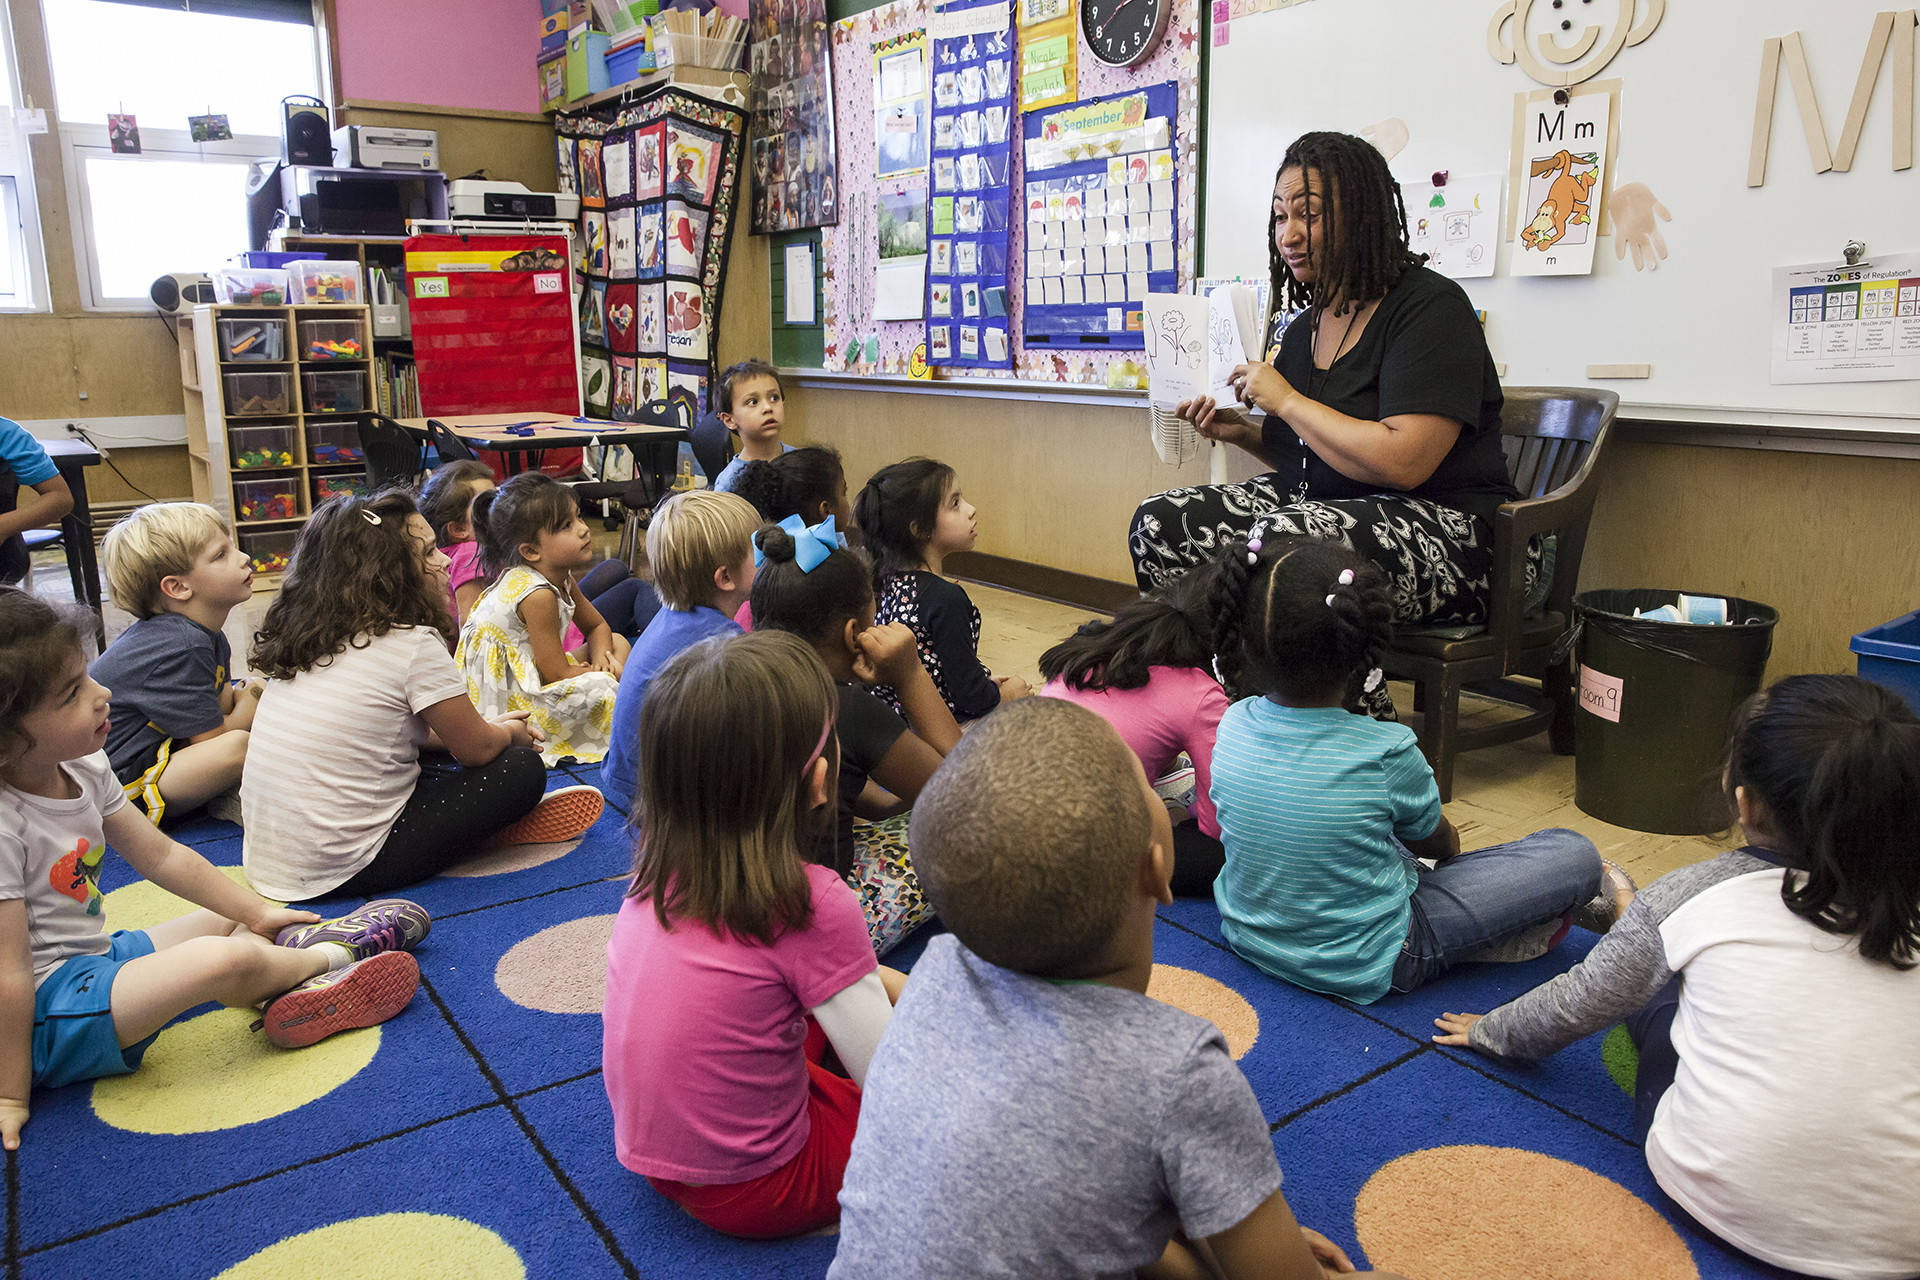 Tontra Love, a transitional kindergarten teacher at Sequoia Elementary School in Oakland, reads to her students at the end of class on Sept. 6, 2016. Brittany Hosea-Small/KQED